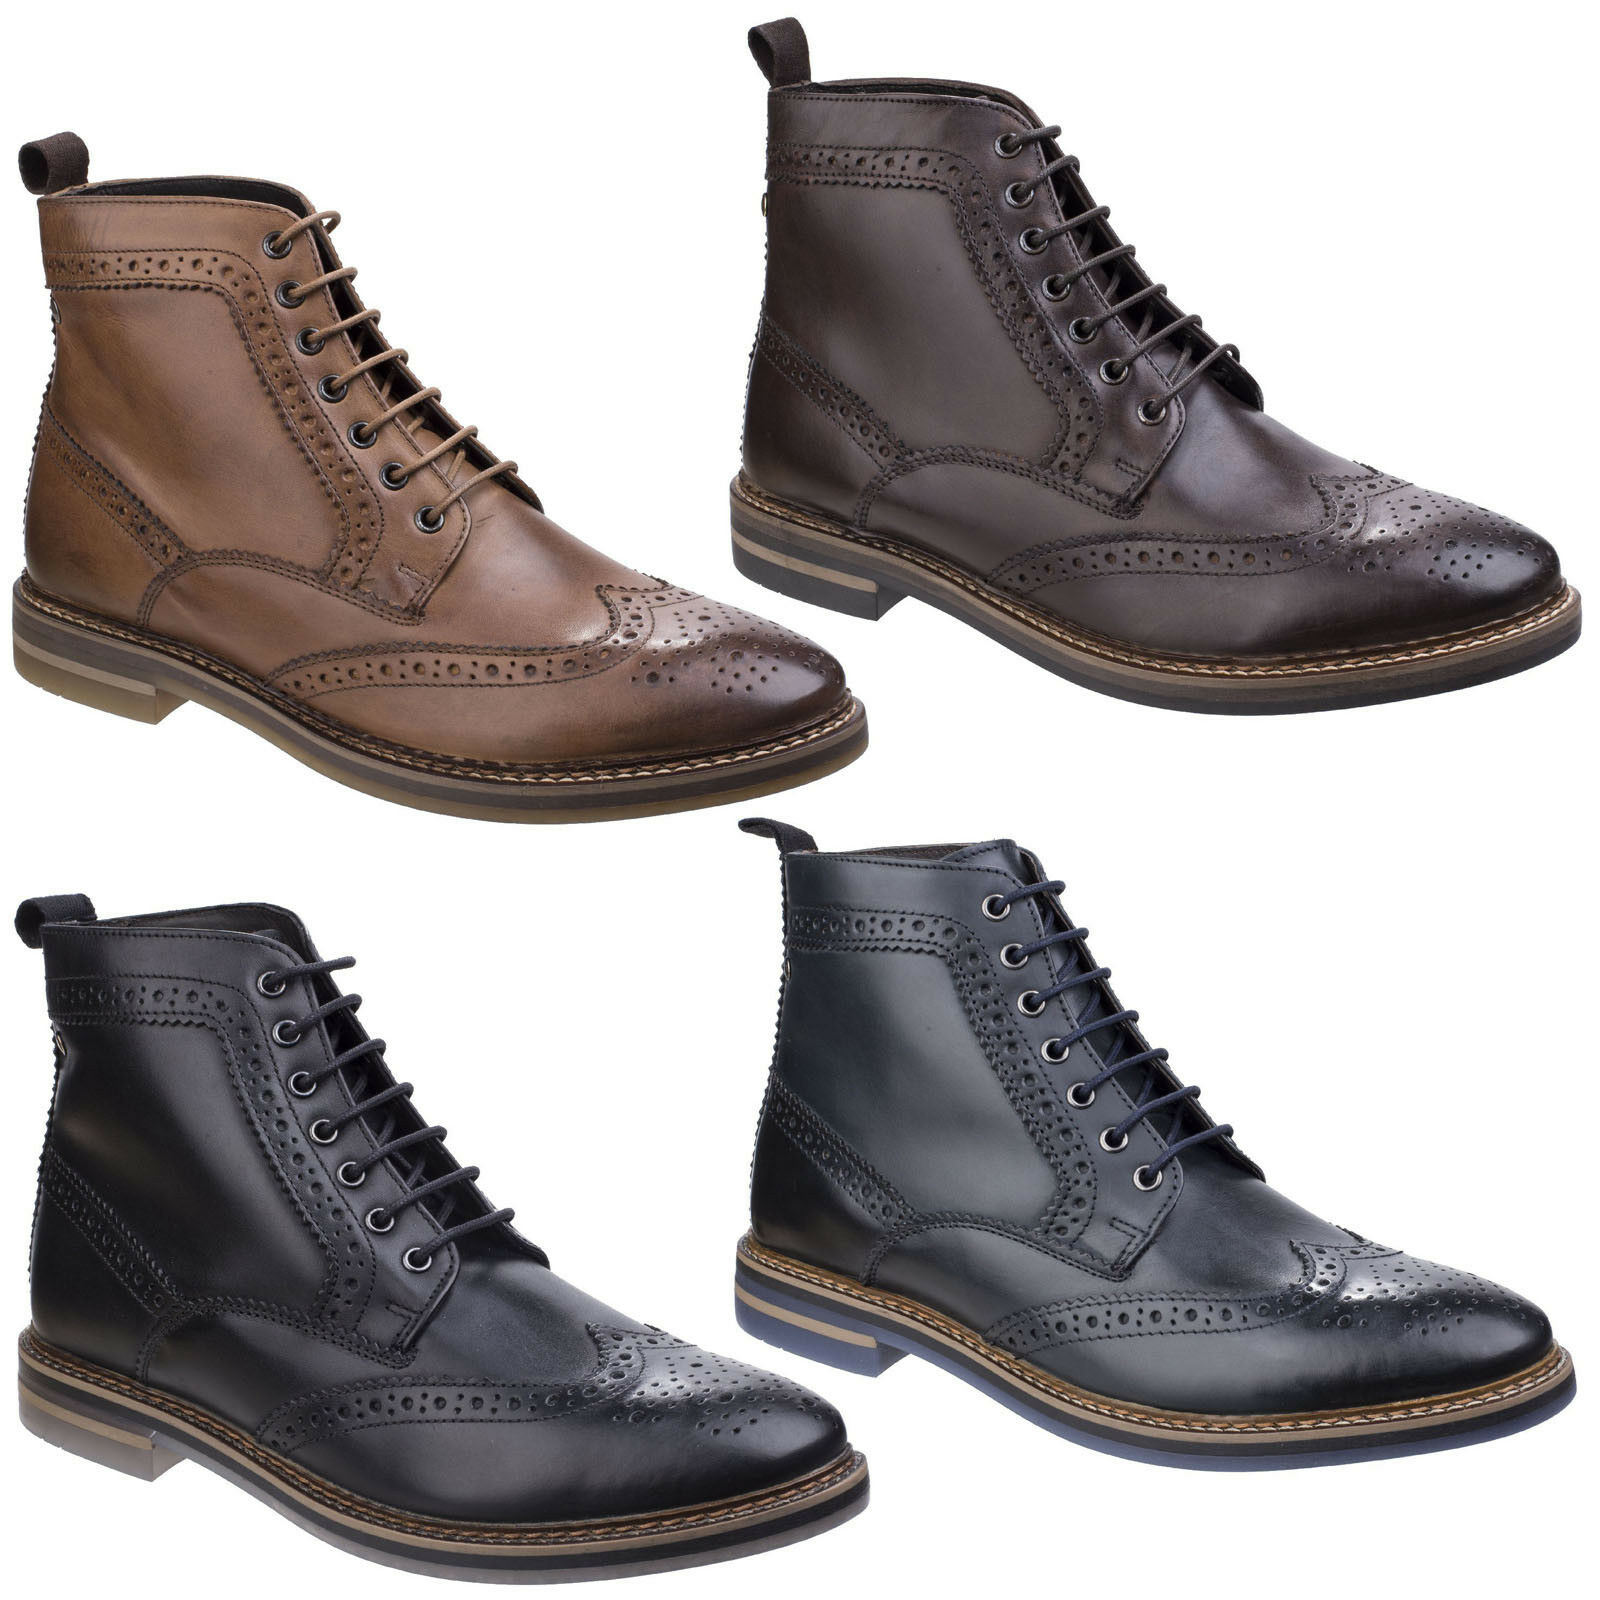 Scarpe casual da uomo  Base London Hurst da uomo in pelle stringati BRUNITA cerosa CALATA Boot